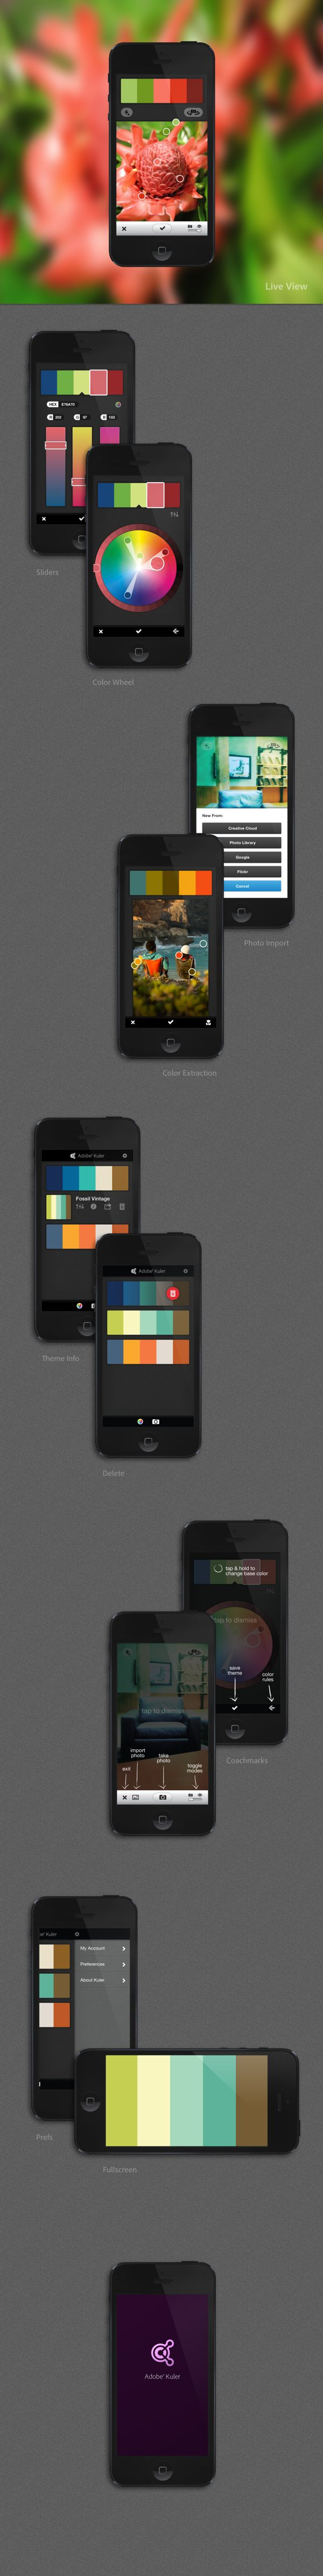 Adobe Kuler (iPhone app) by Gabriel Campbell, via Behance #design, #UI, #UX, #interface, #experience